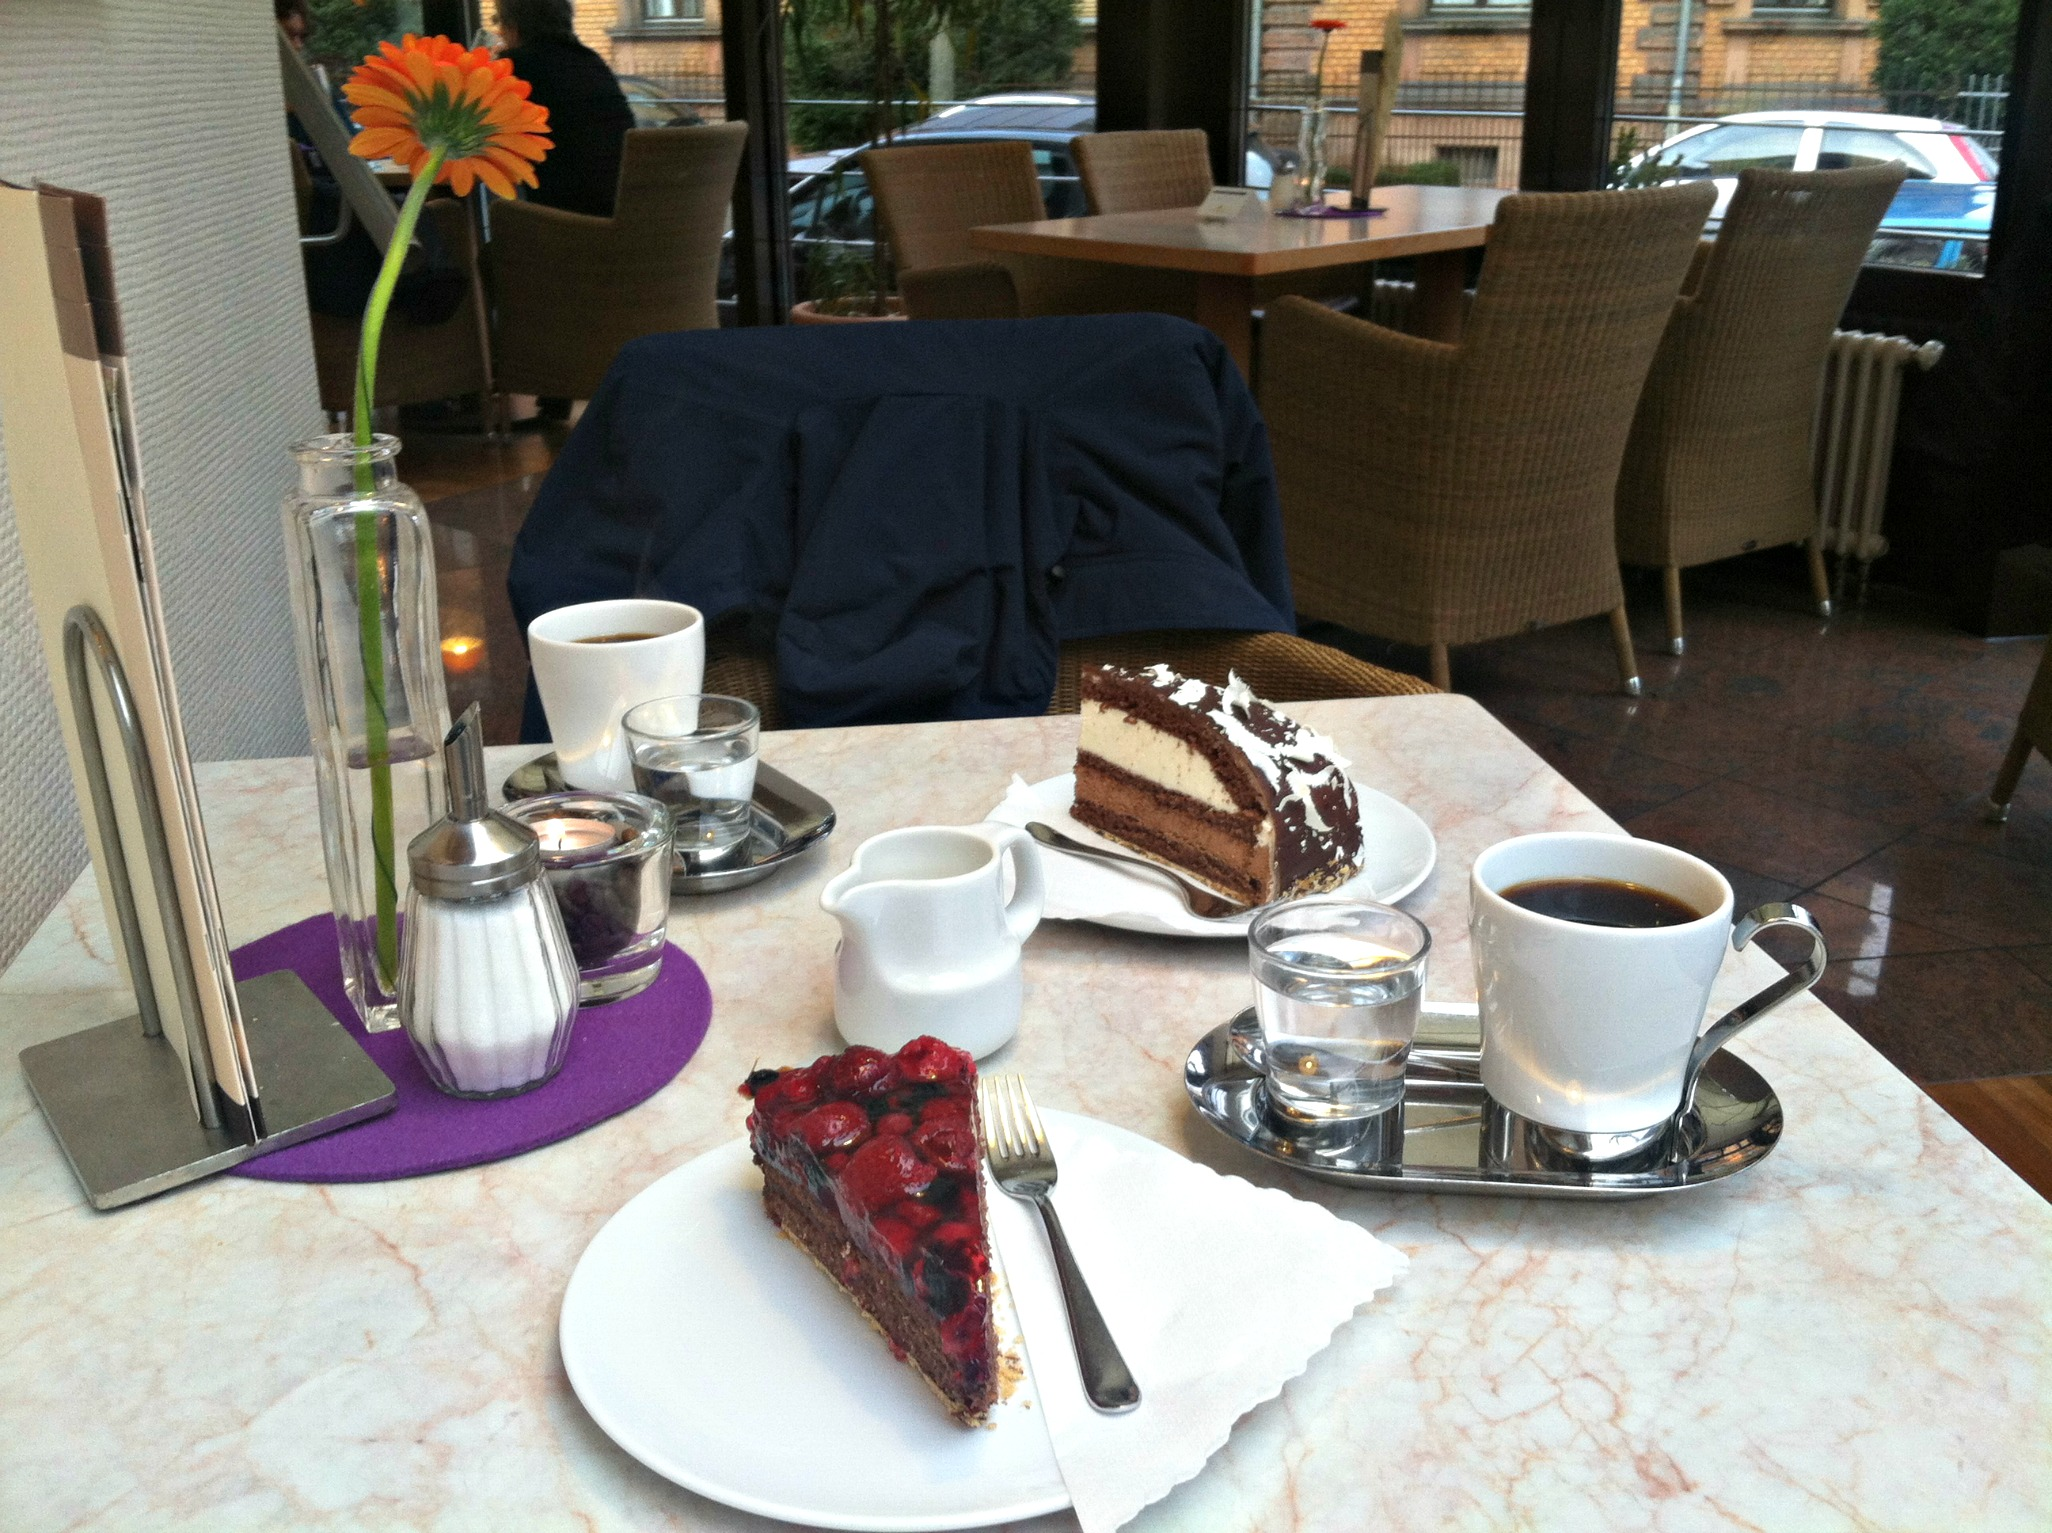 Cafe Und Kuchen 8 Of The Best Coffeshops And Cafes In Marburg Caitlin Travis